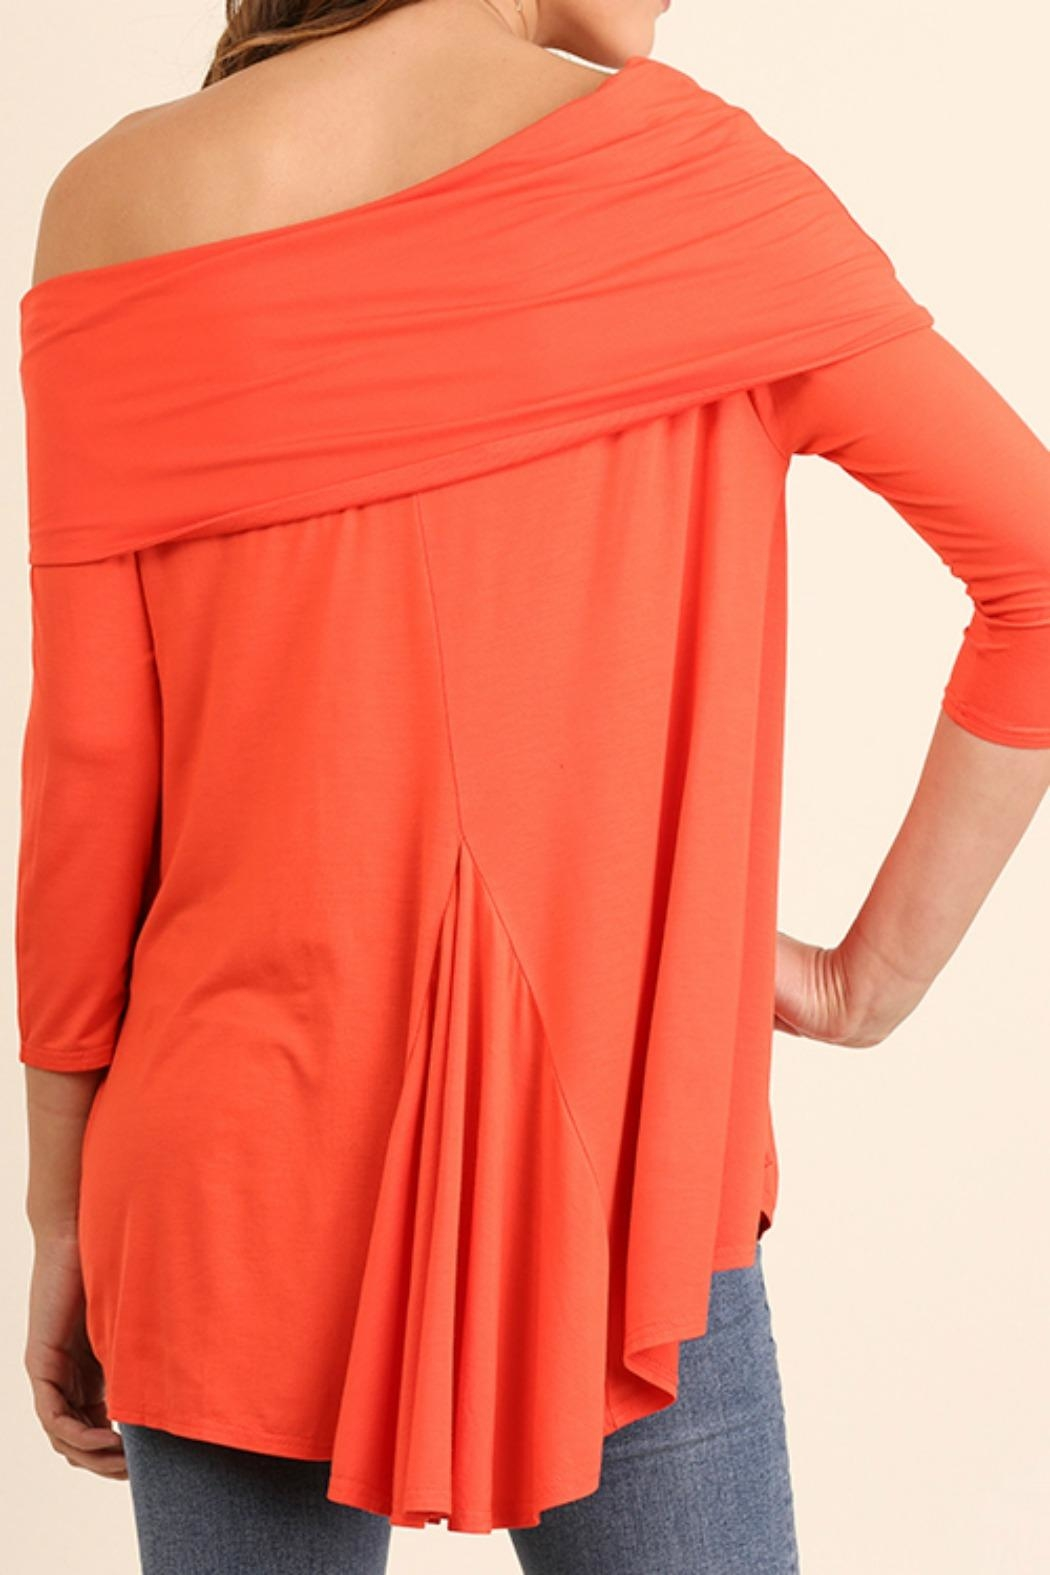 Umgee USA One Shoulder Top - Front Full Image